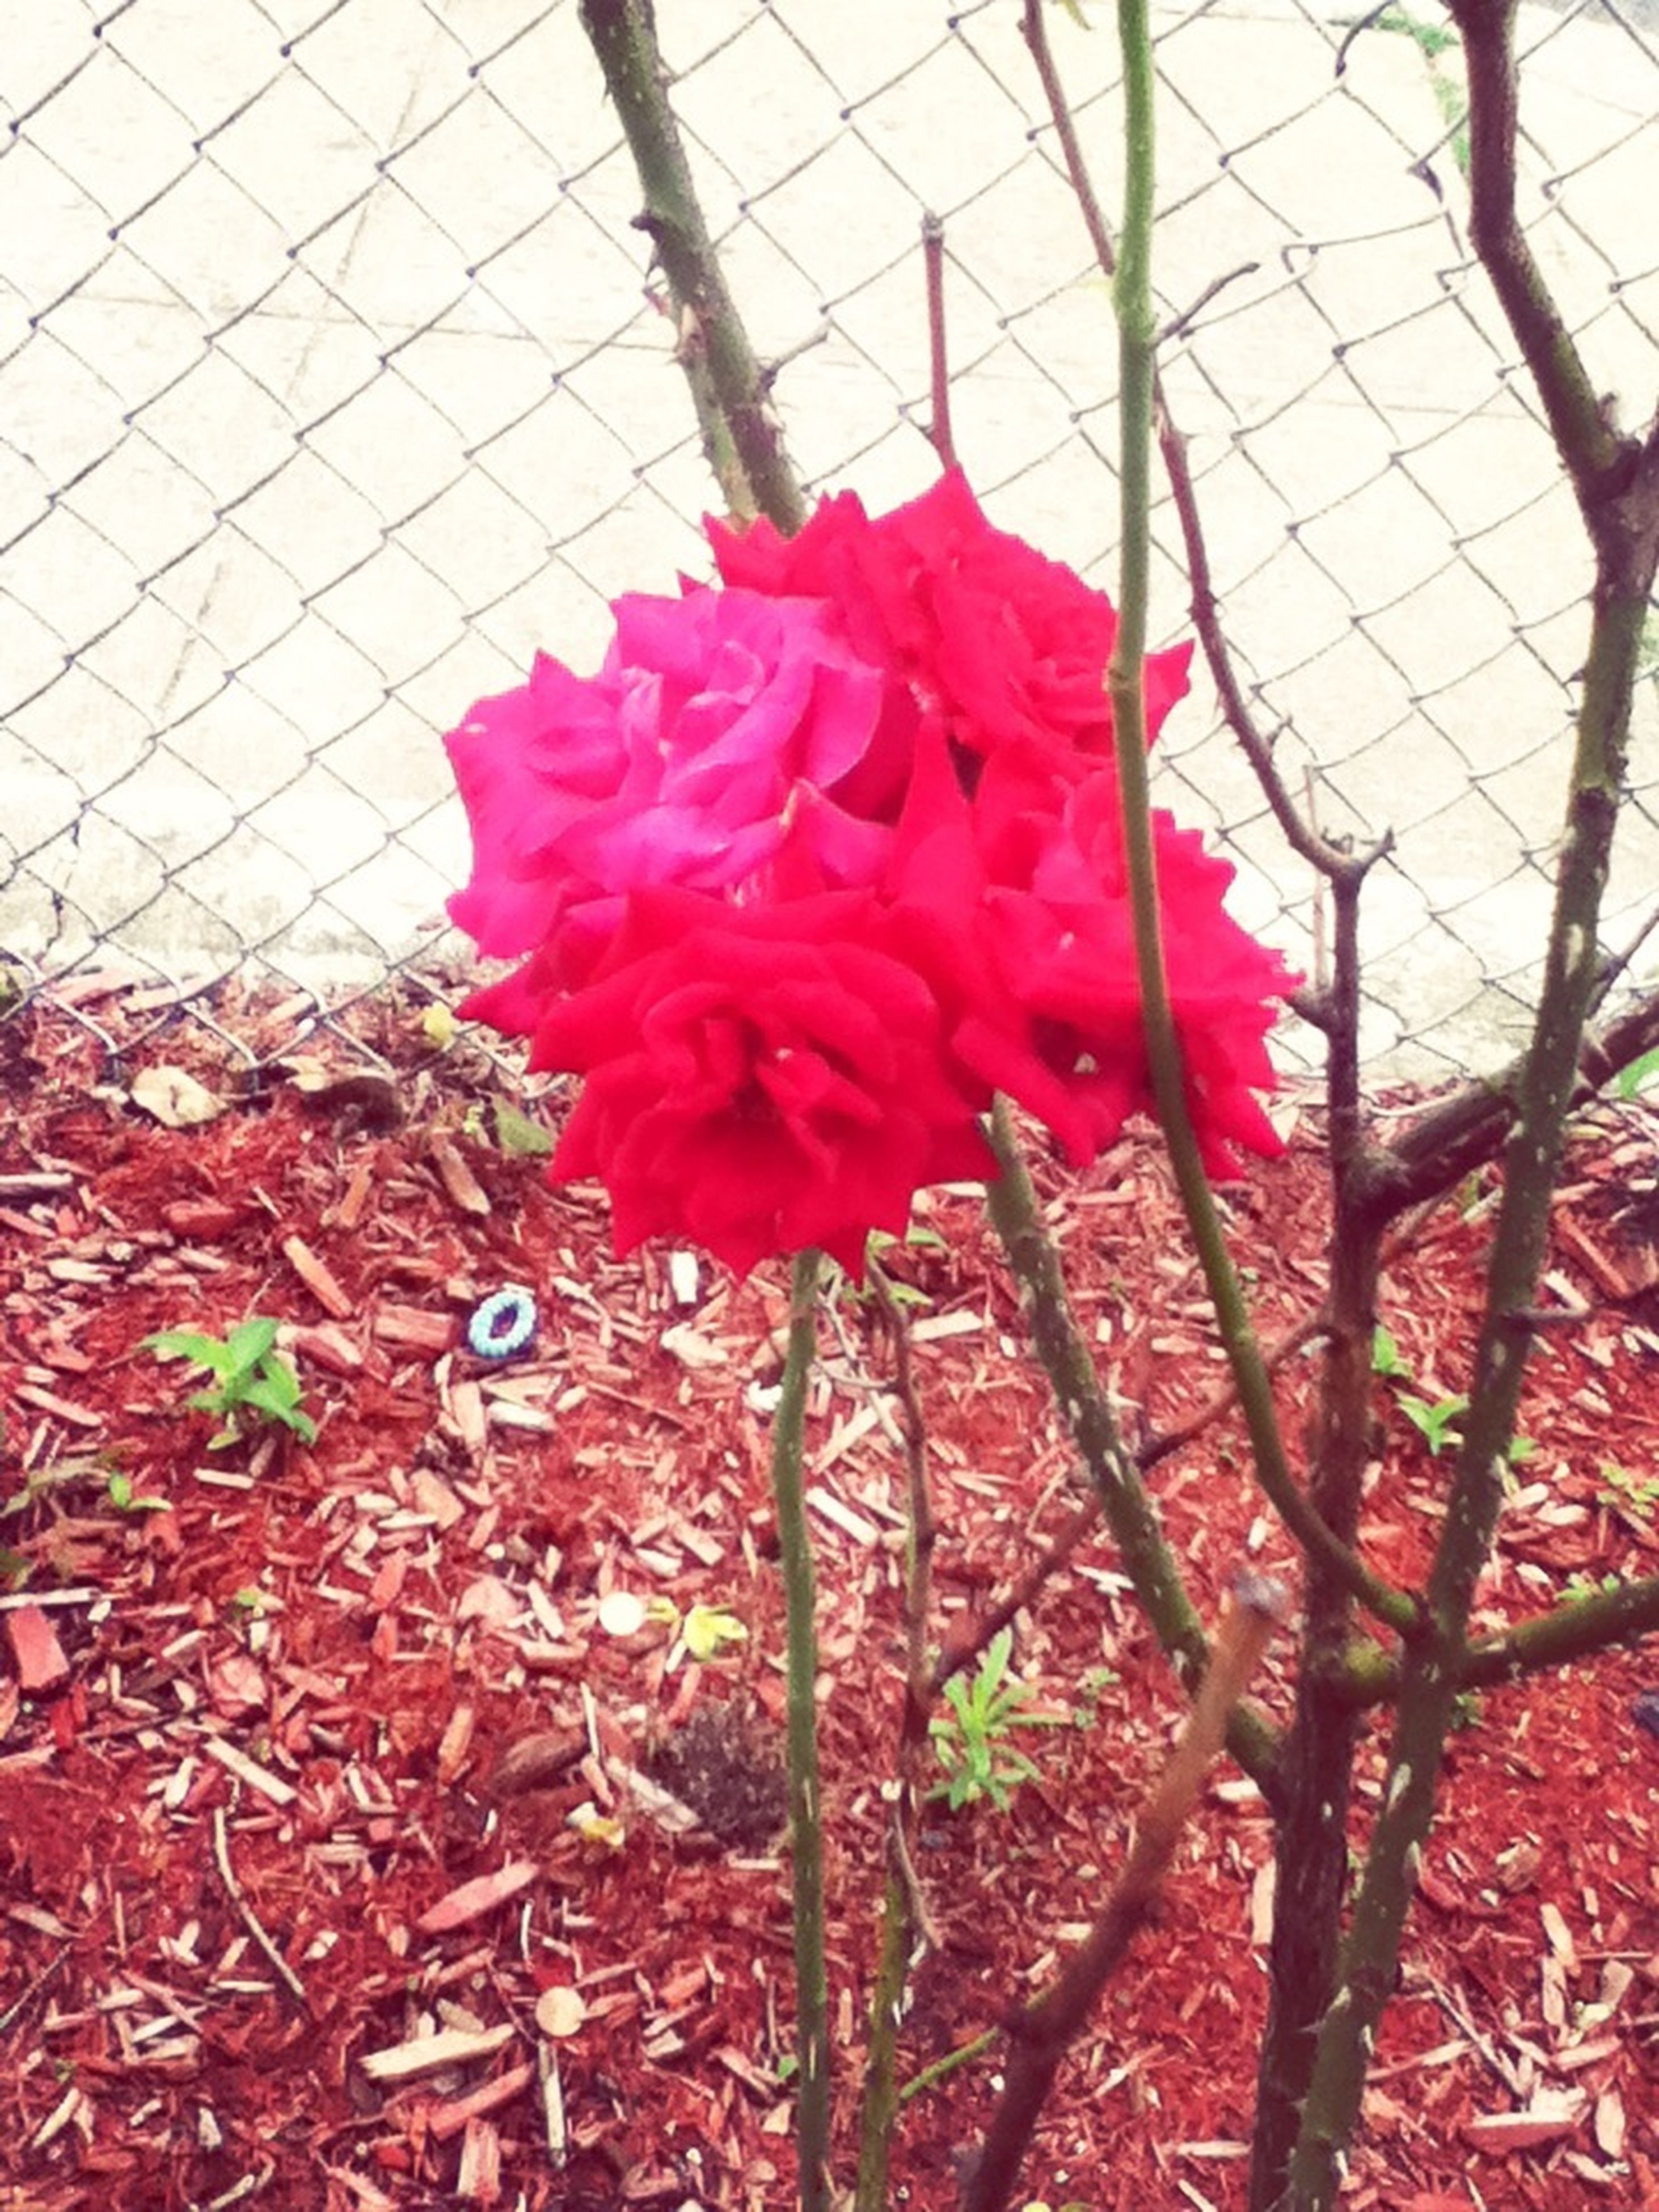 flower, fragility, red, growth, pink color, freshness, plant, petal, nature, beauty in nature, blooming, leaf, chainlink fence, flower head, close-up, day, no people, in bloom, built structure, fence